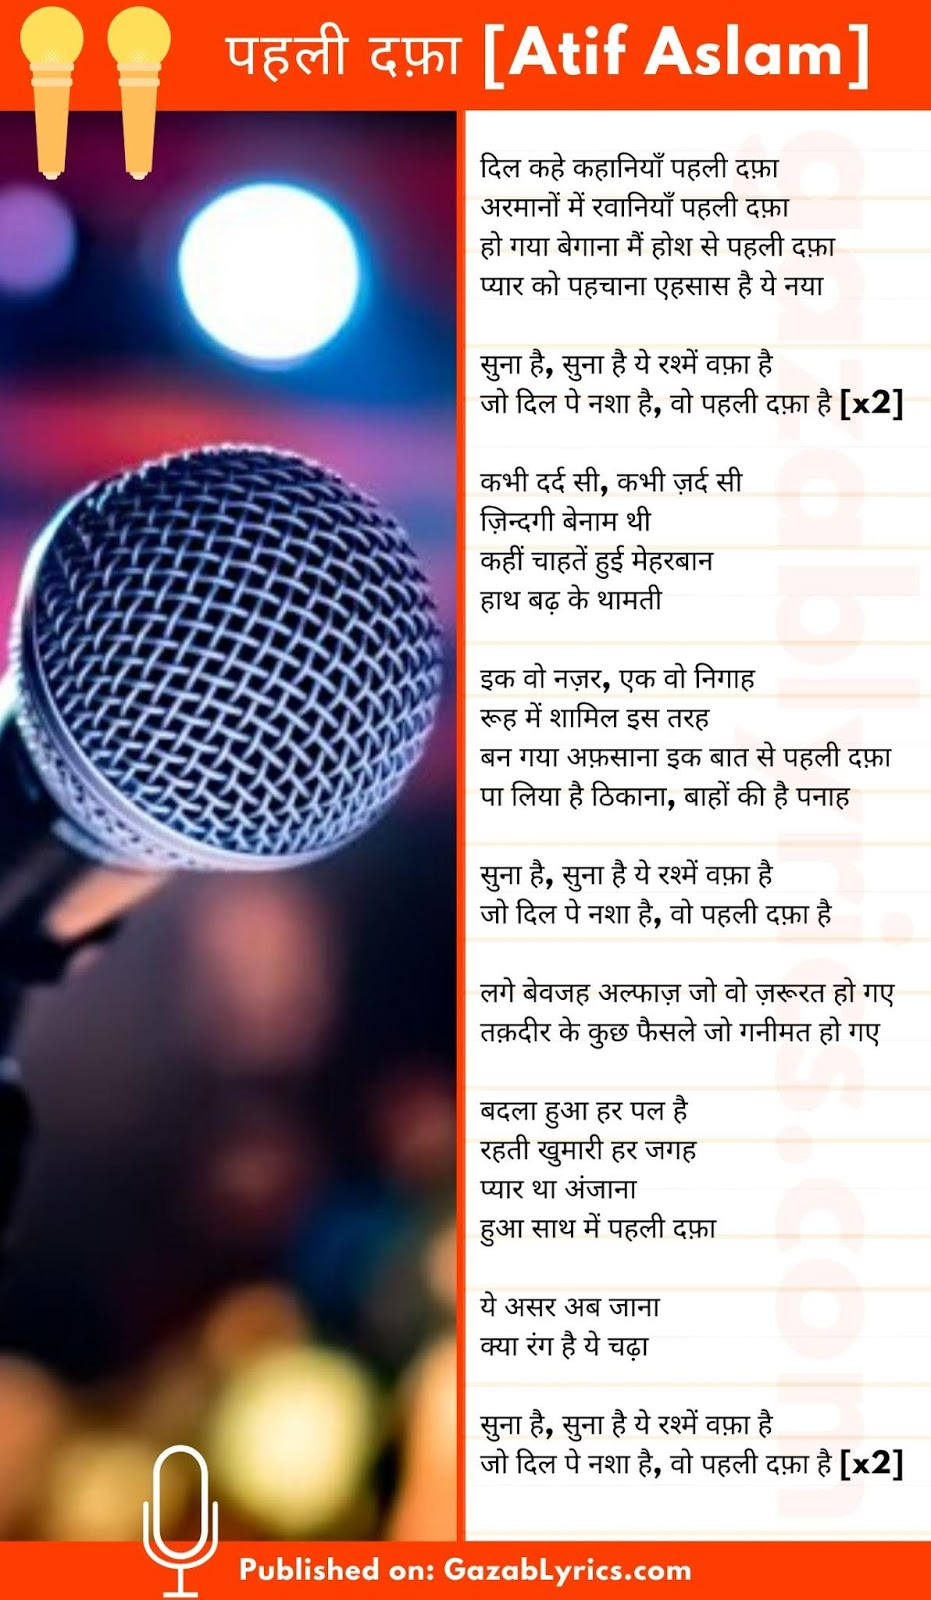 Pehli Dafa song lyrics image